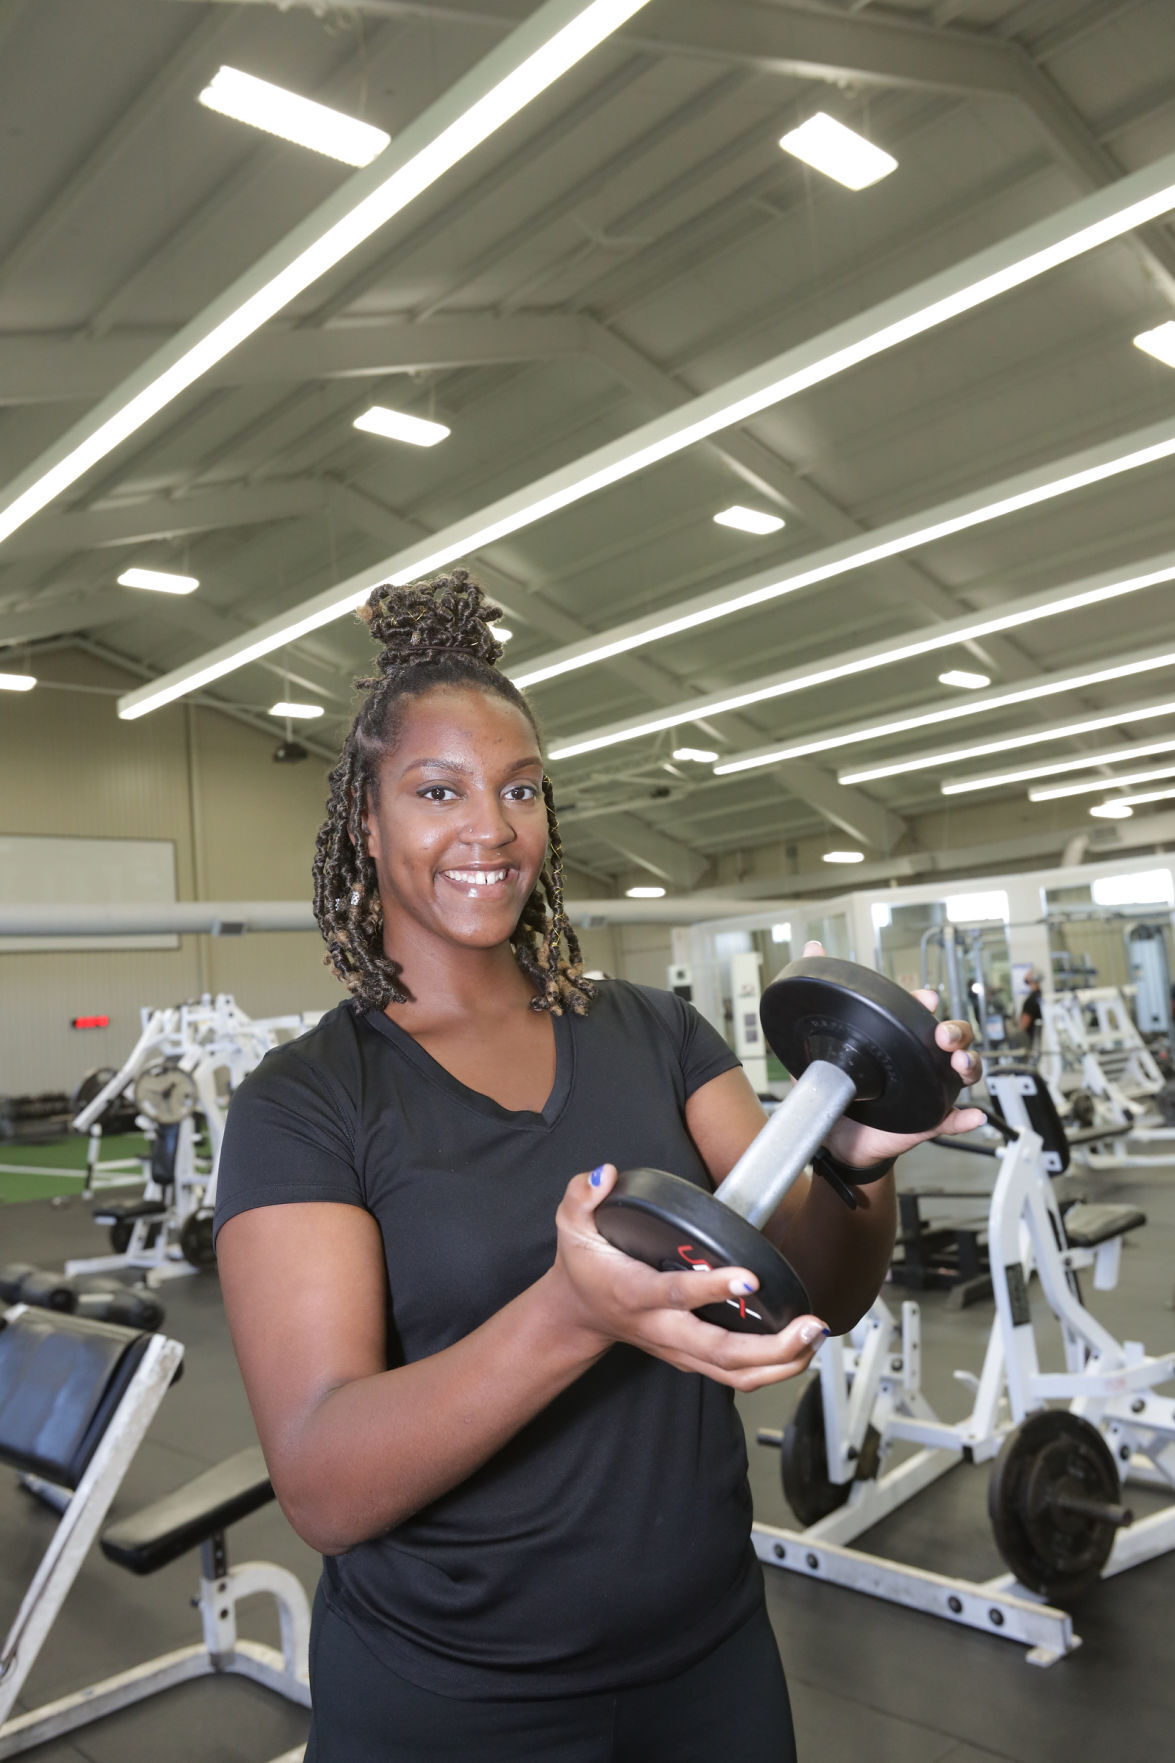 Exercise can help ease the discomfort and tightness of arthritis